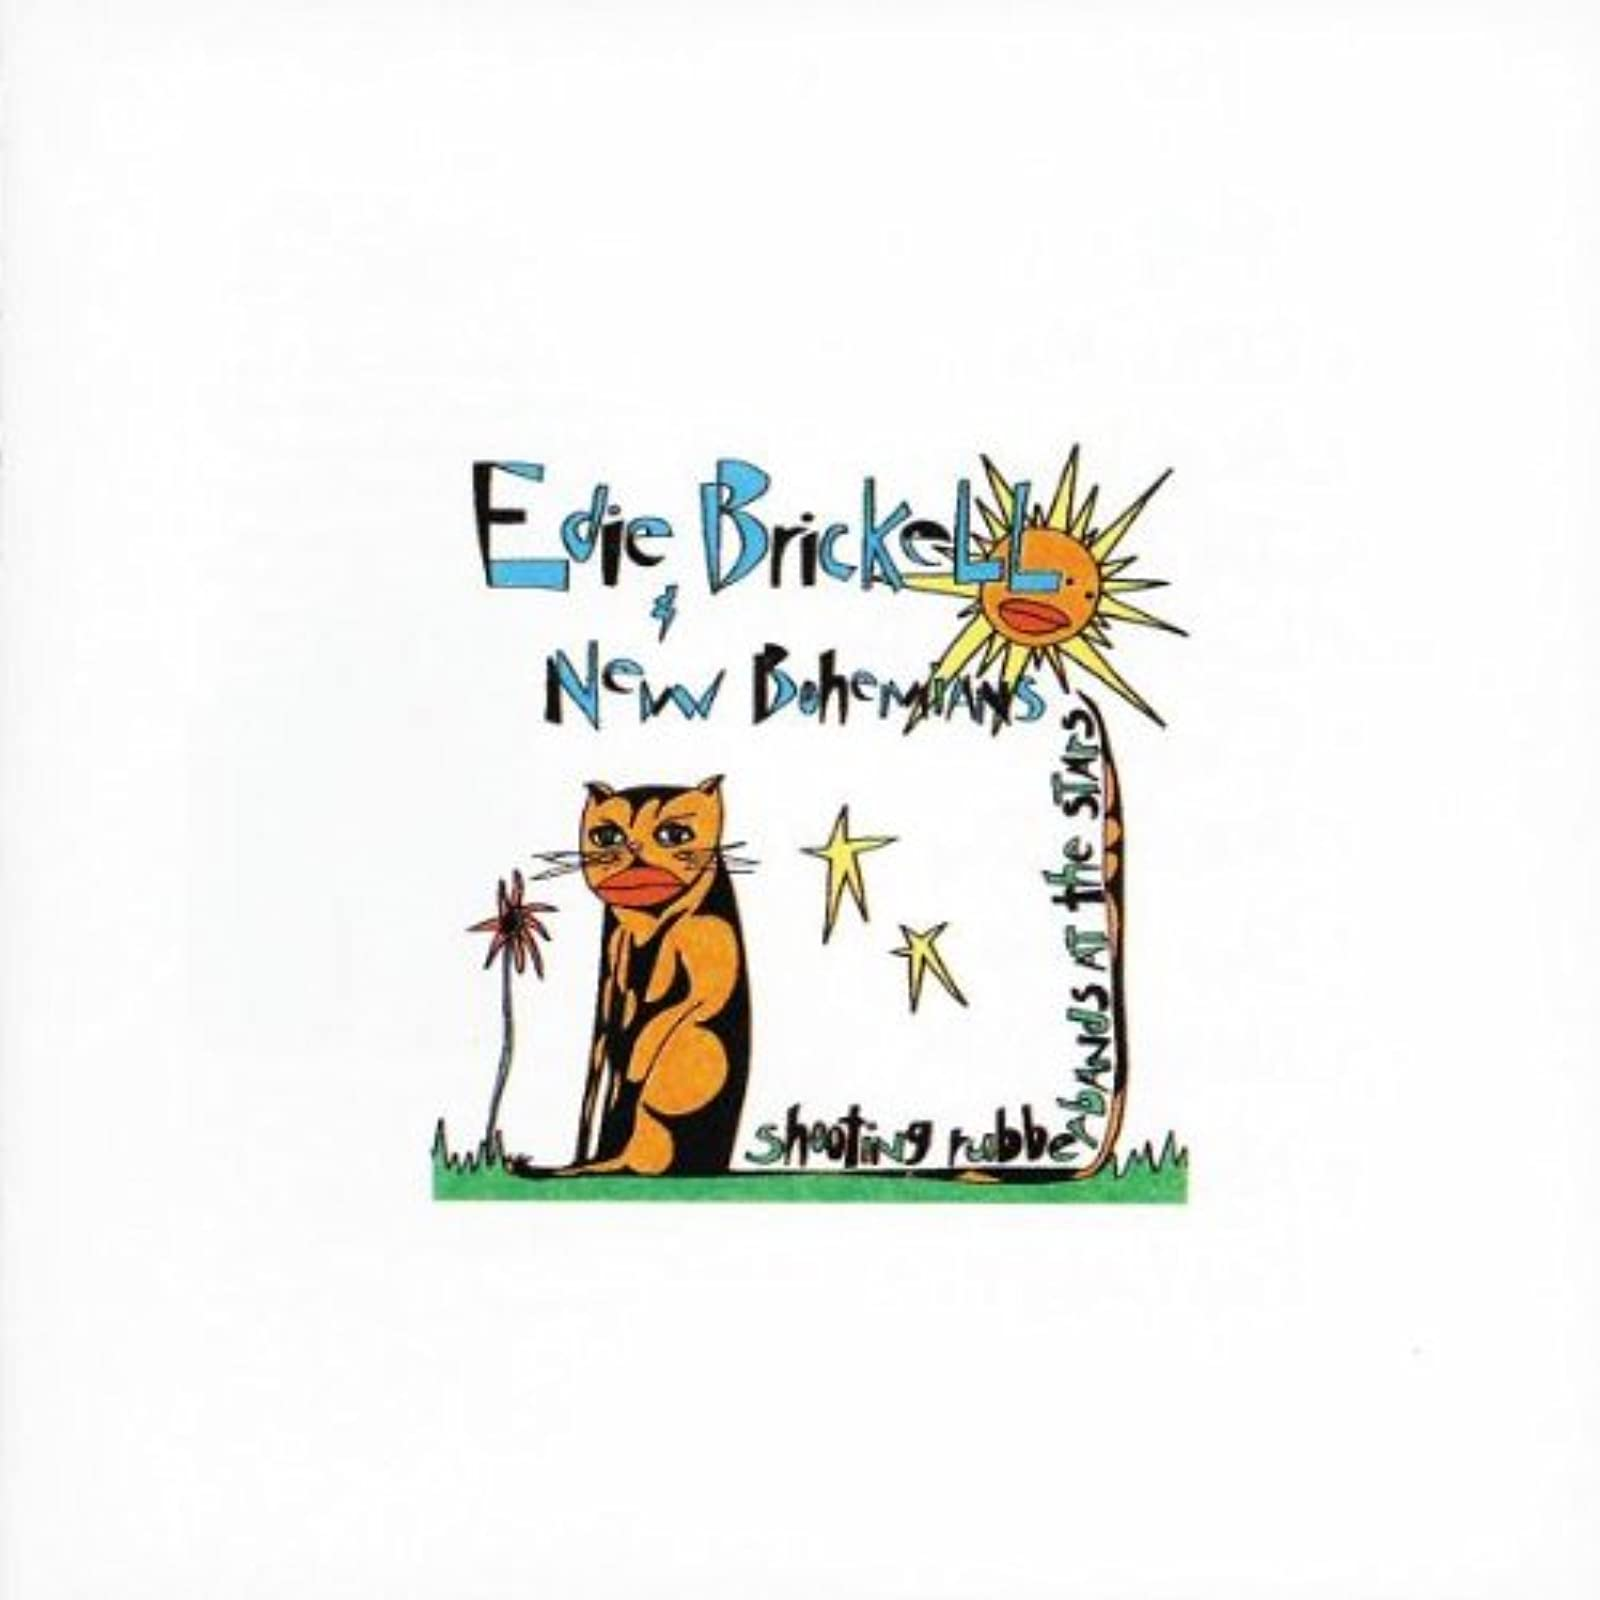 Shooting Rubberbands At The Stars By Edie Brickell & Bohemians On